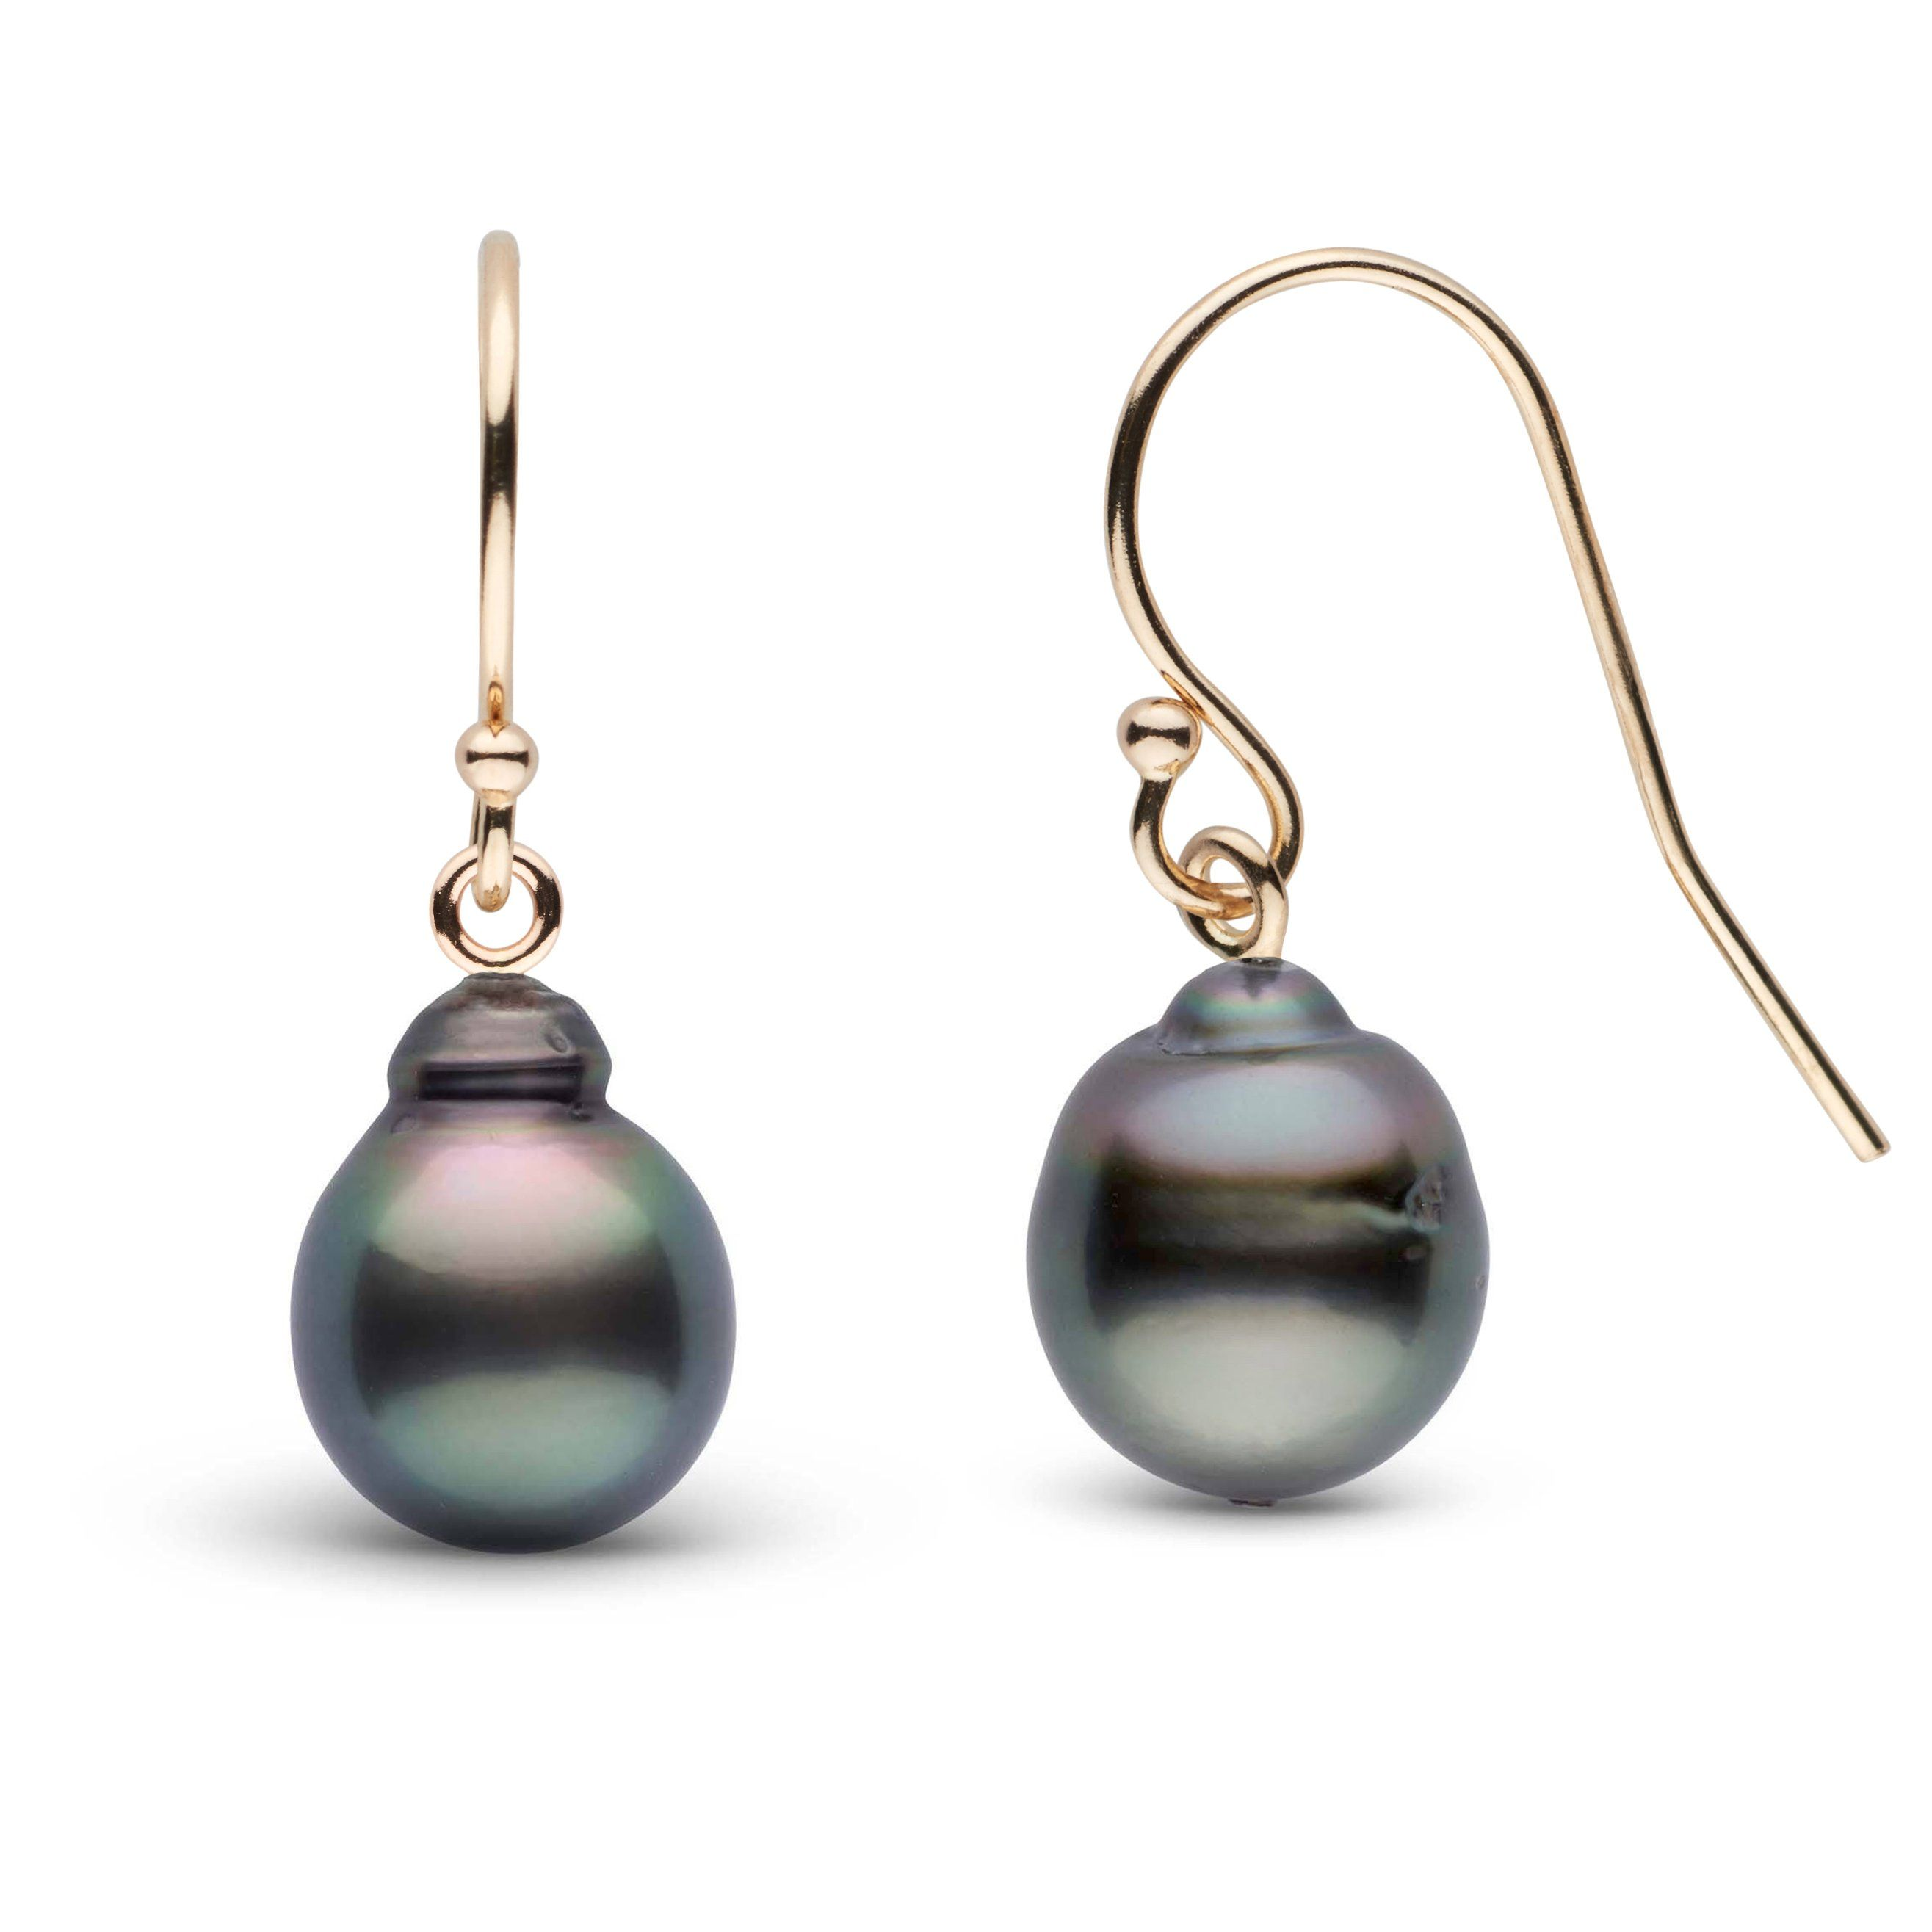 8.0-9.0 mm Tahitian Baroque Pearl French Wire Earrings